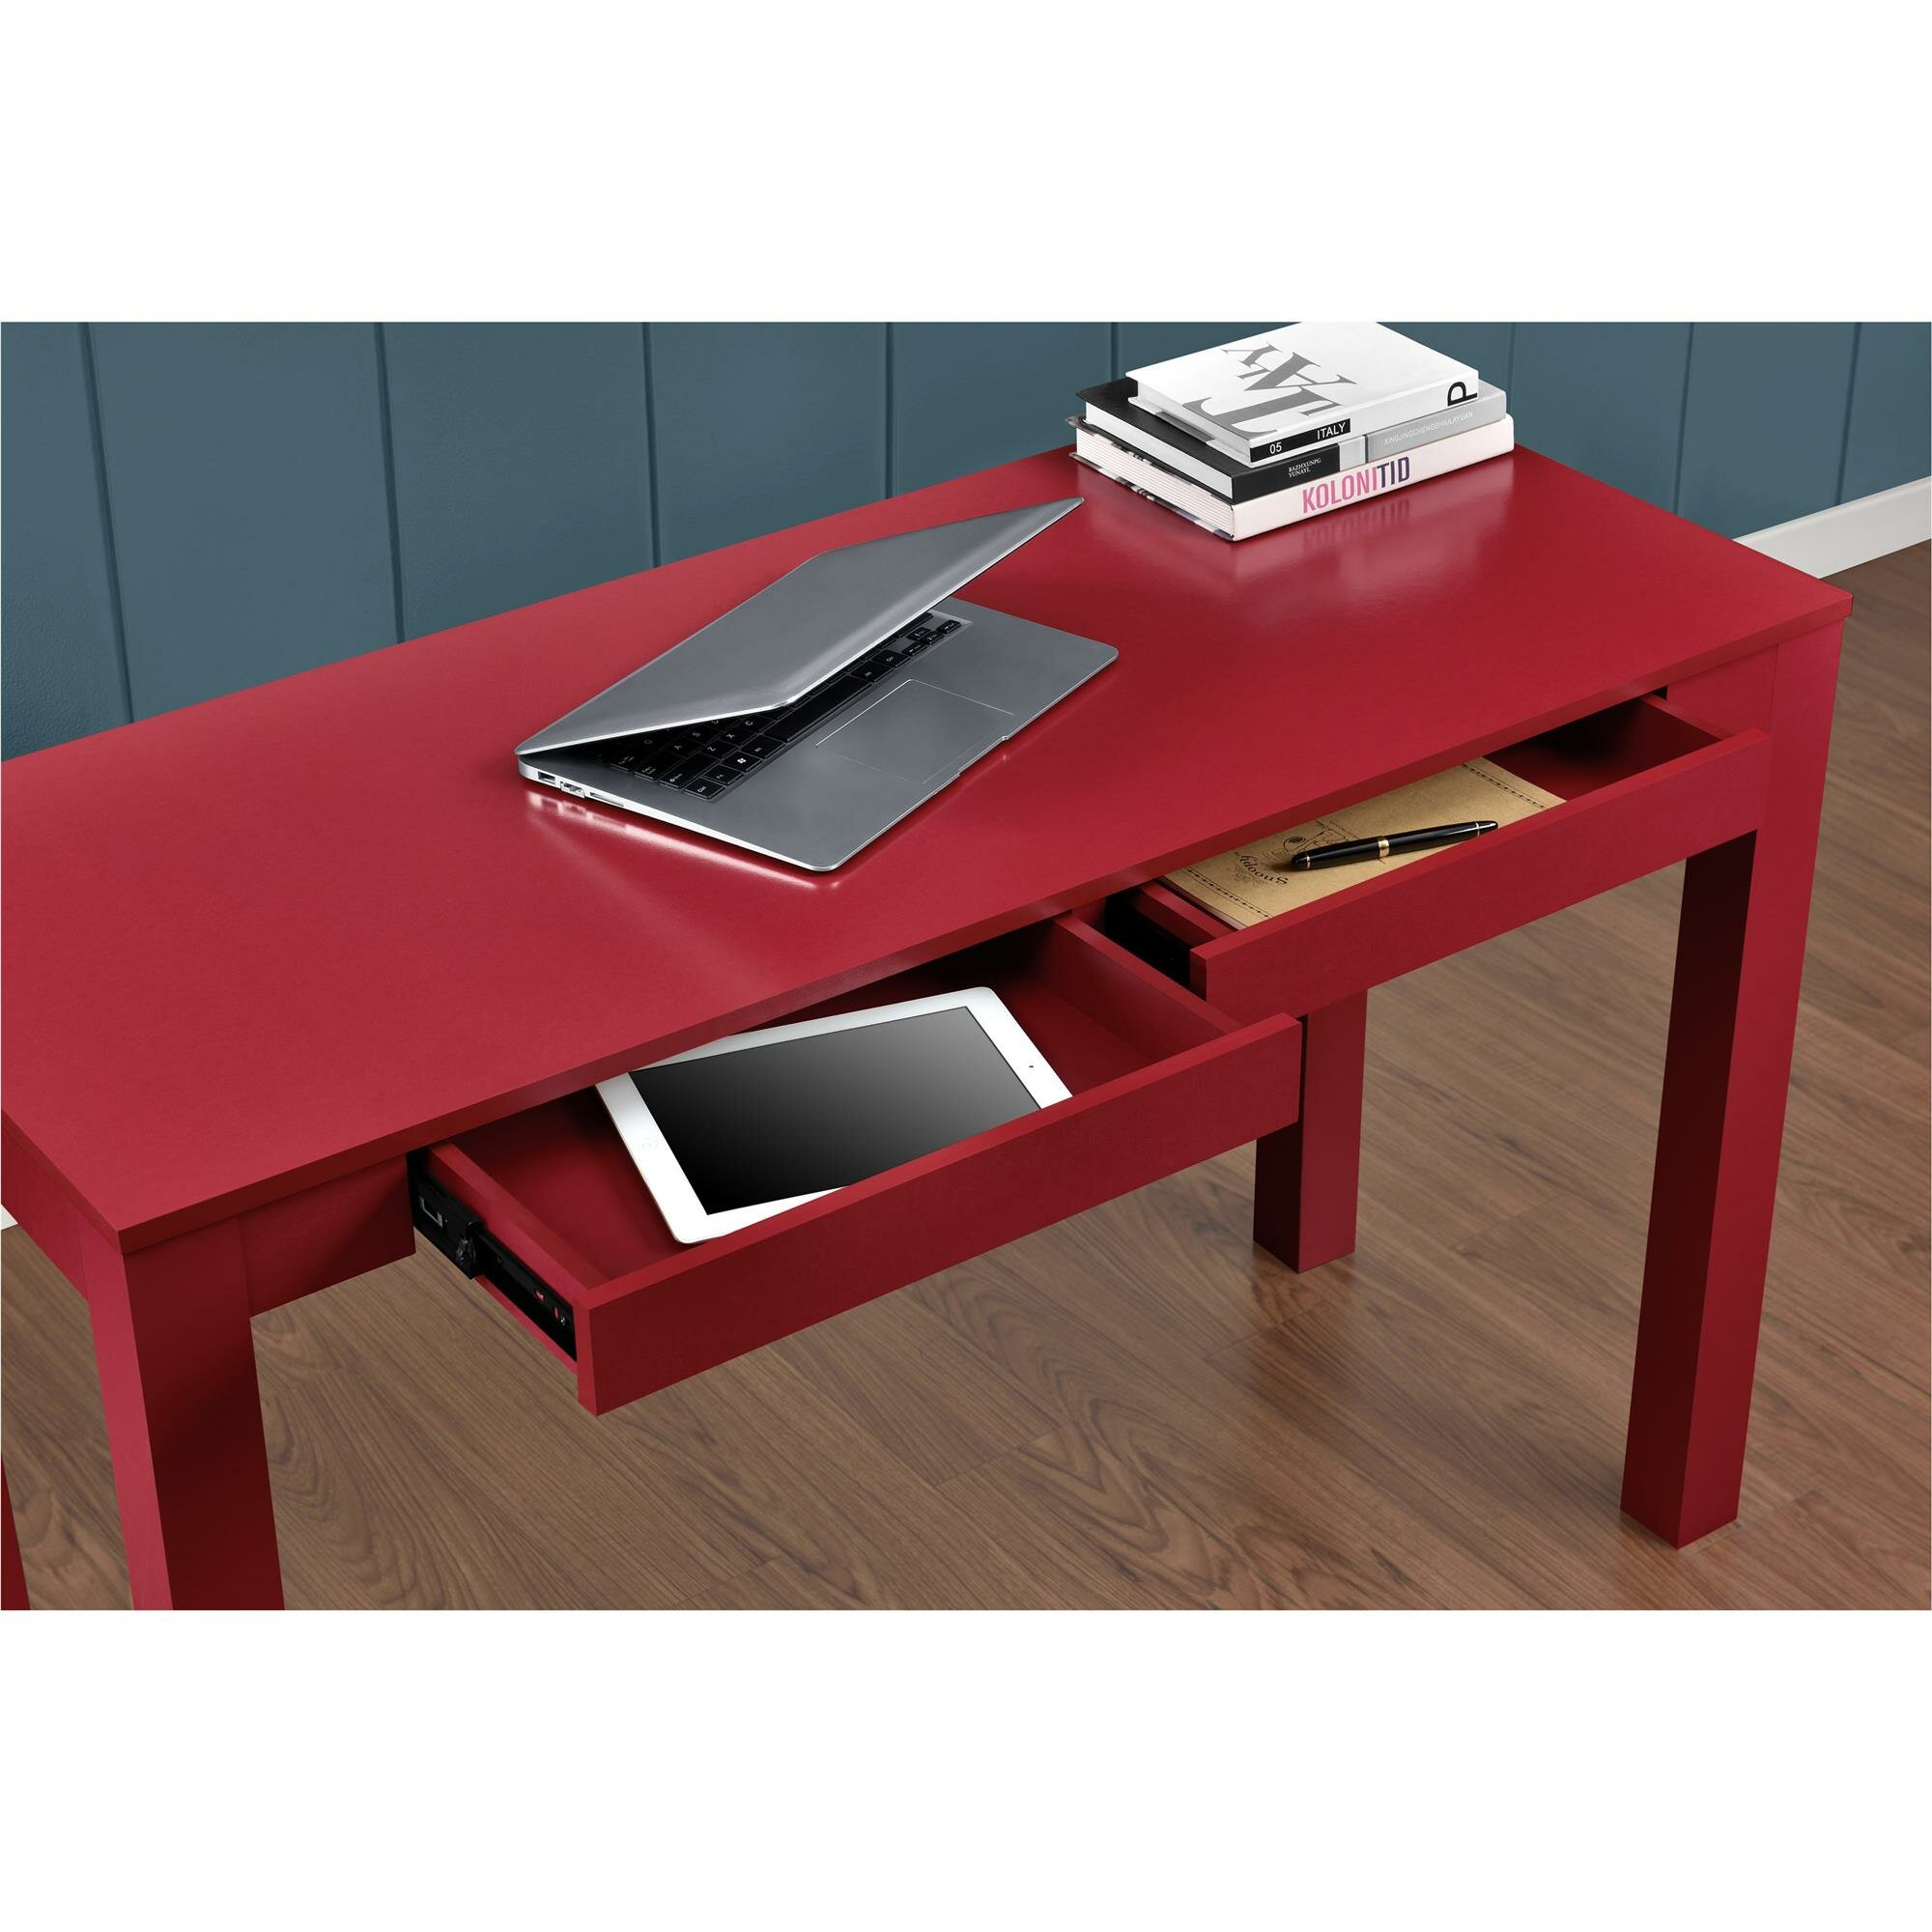 The Altra Parsons Deluxe Desk Is A Little On The Cheap ...